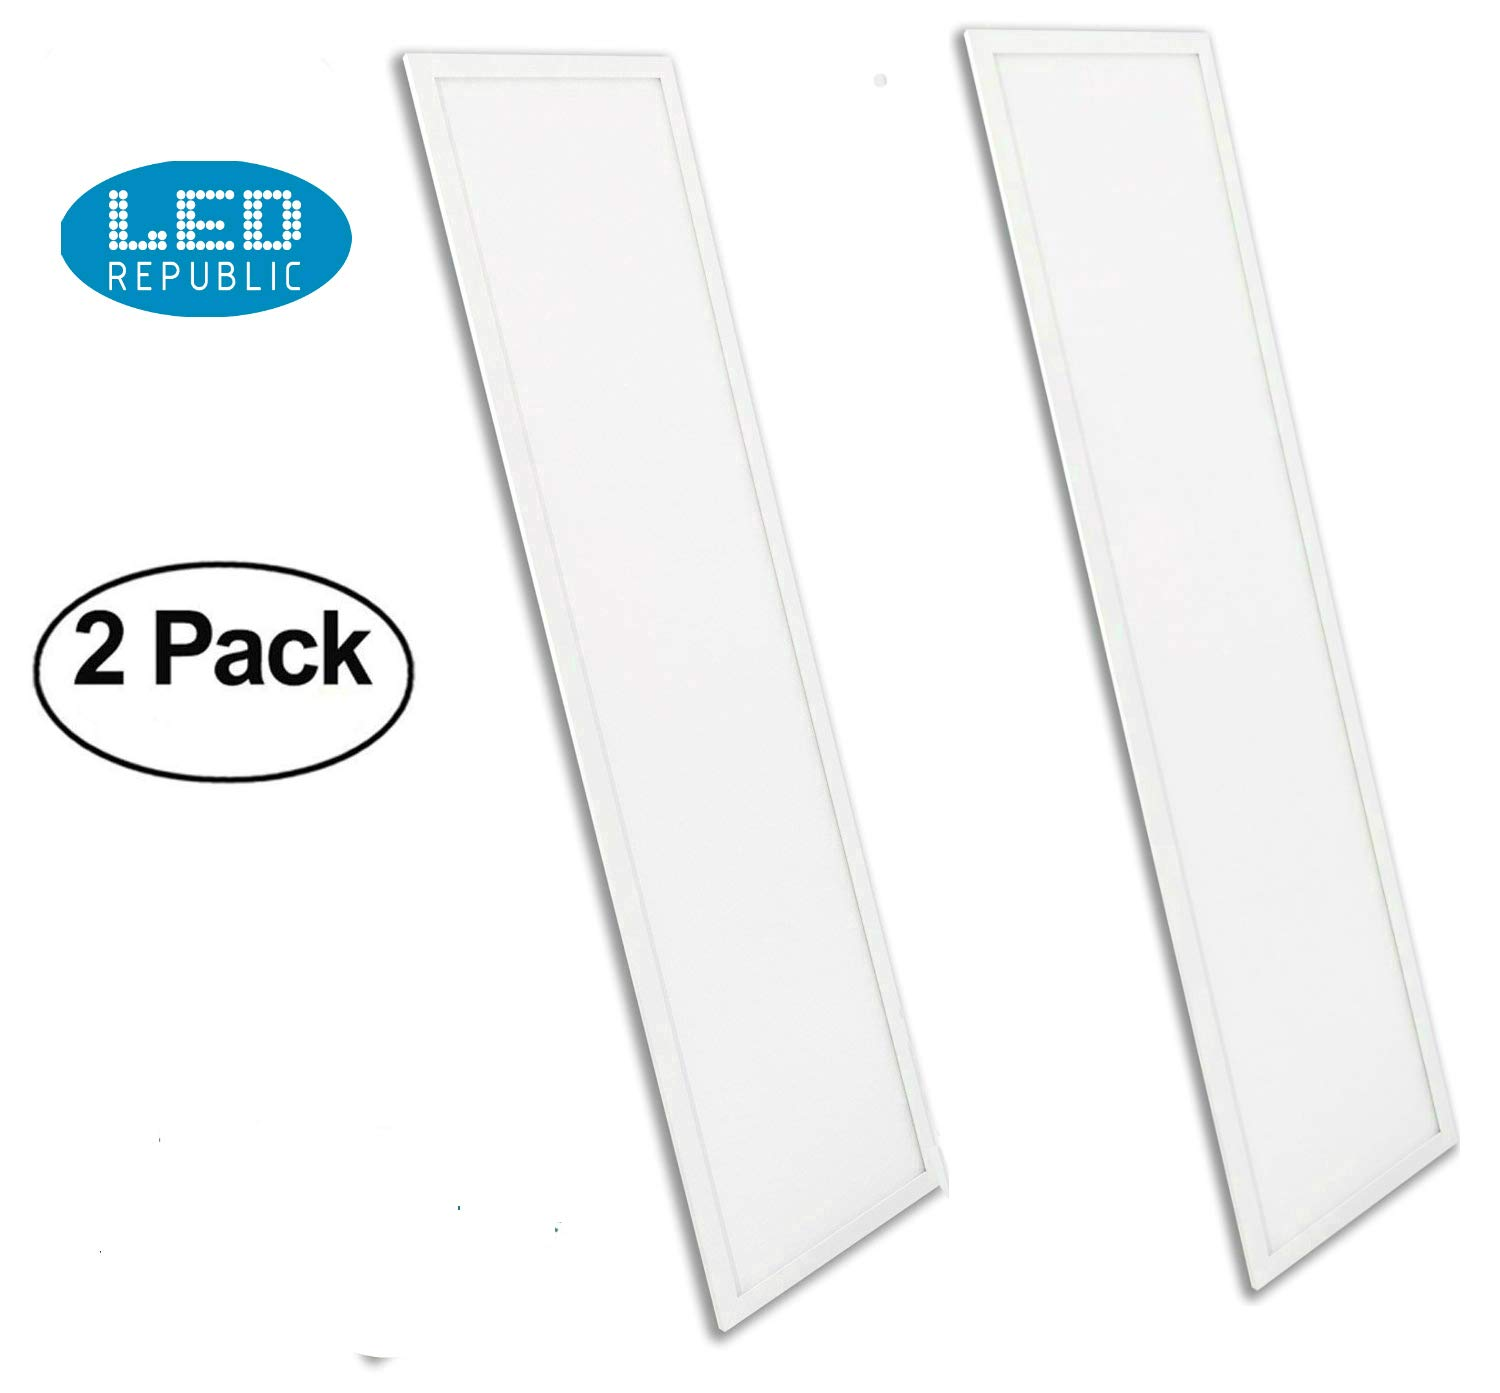 Led Republic Ul Panel 2 Pack Light 1x4 40w 5000k 4300 Lumens T3 Fixture Wiring Diagram Daylight Dlc Qualified Eligible For Nationwide Rebate Programs Flat Celling Sheet